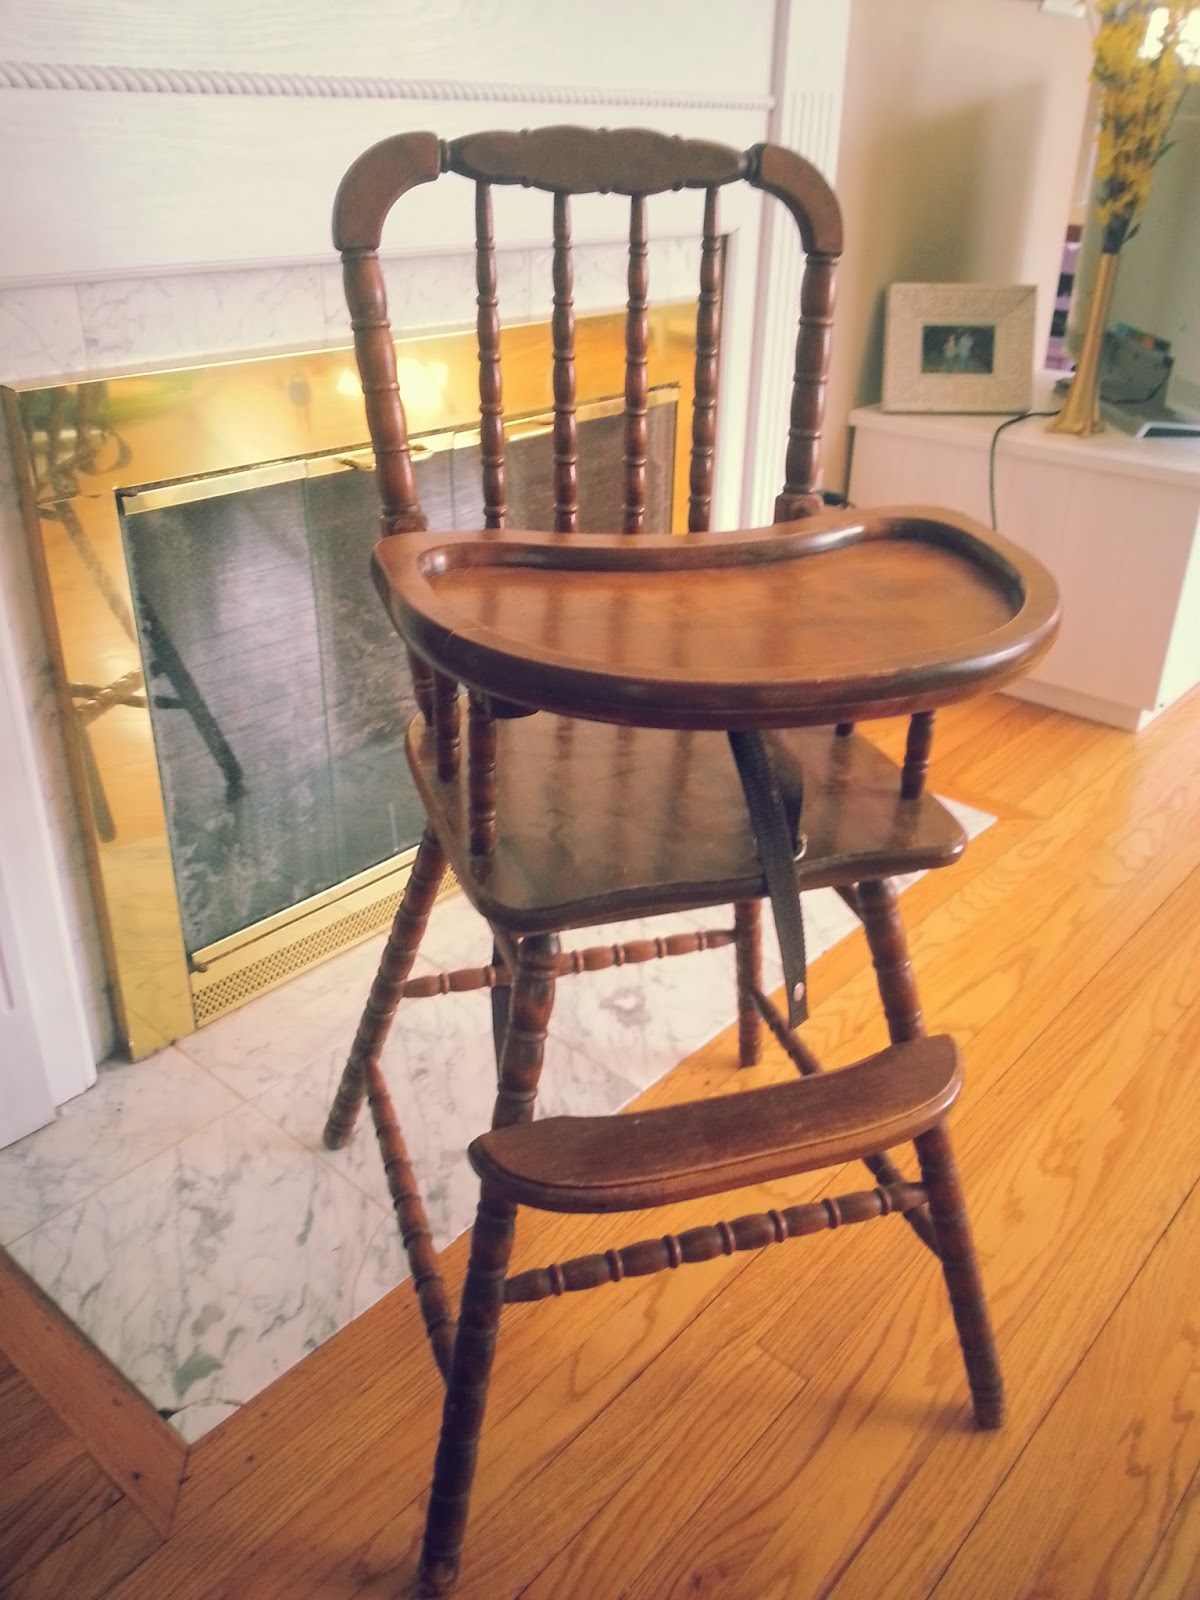 3 in one high chair plans european covers bloom client project vintage milk paint